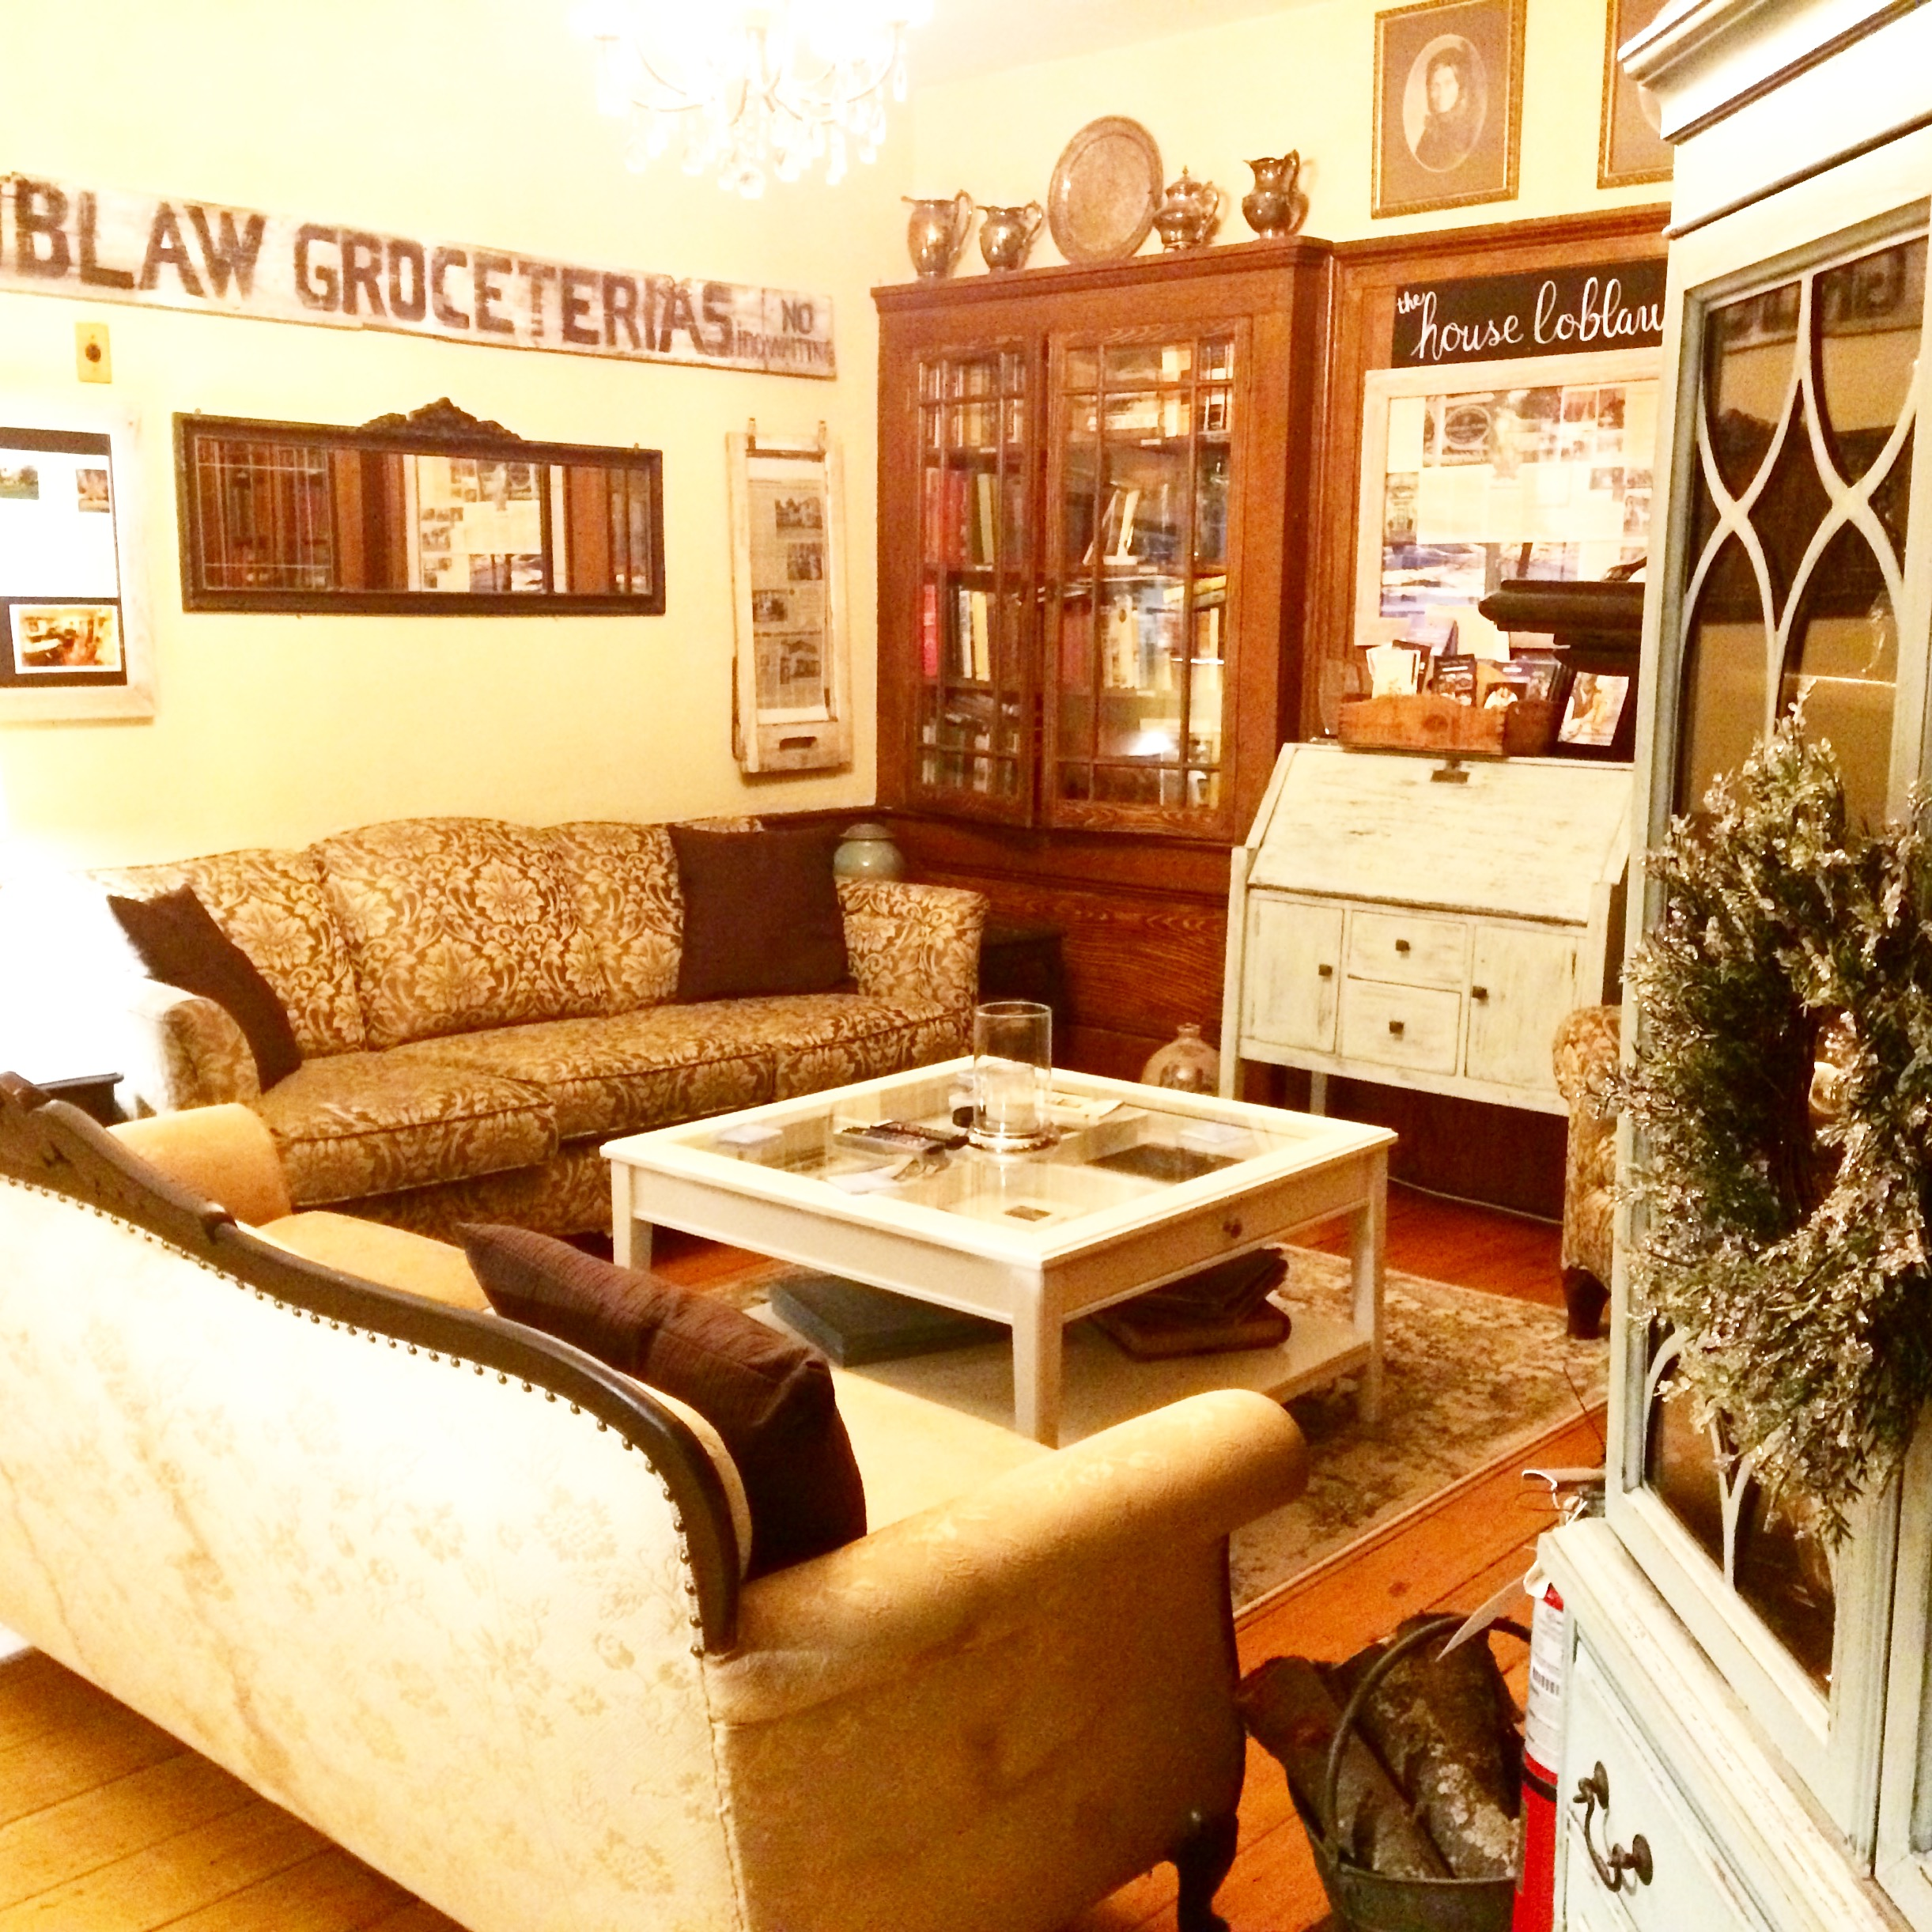 living room theater drink menu furniture arrangements for small rooms stevenson farms and harvest spa a boutique country b which offers historically appointed guest heritage banquet hall private movie theatre fully licensed bar full service organic day